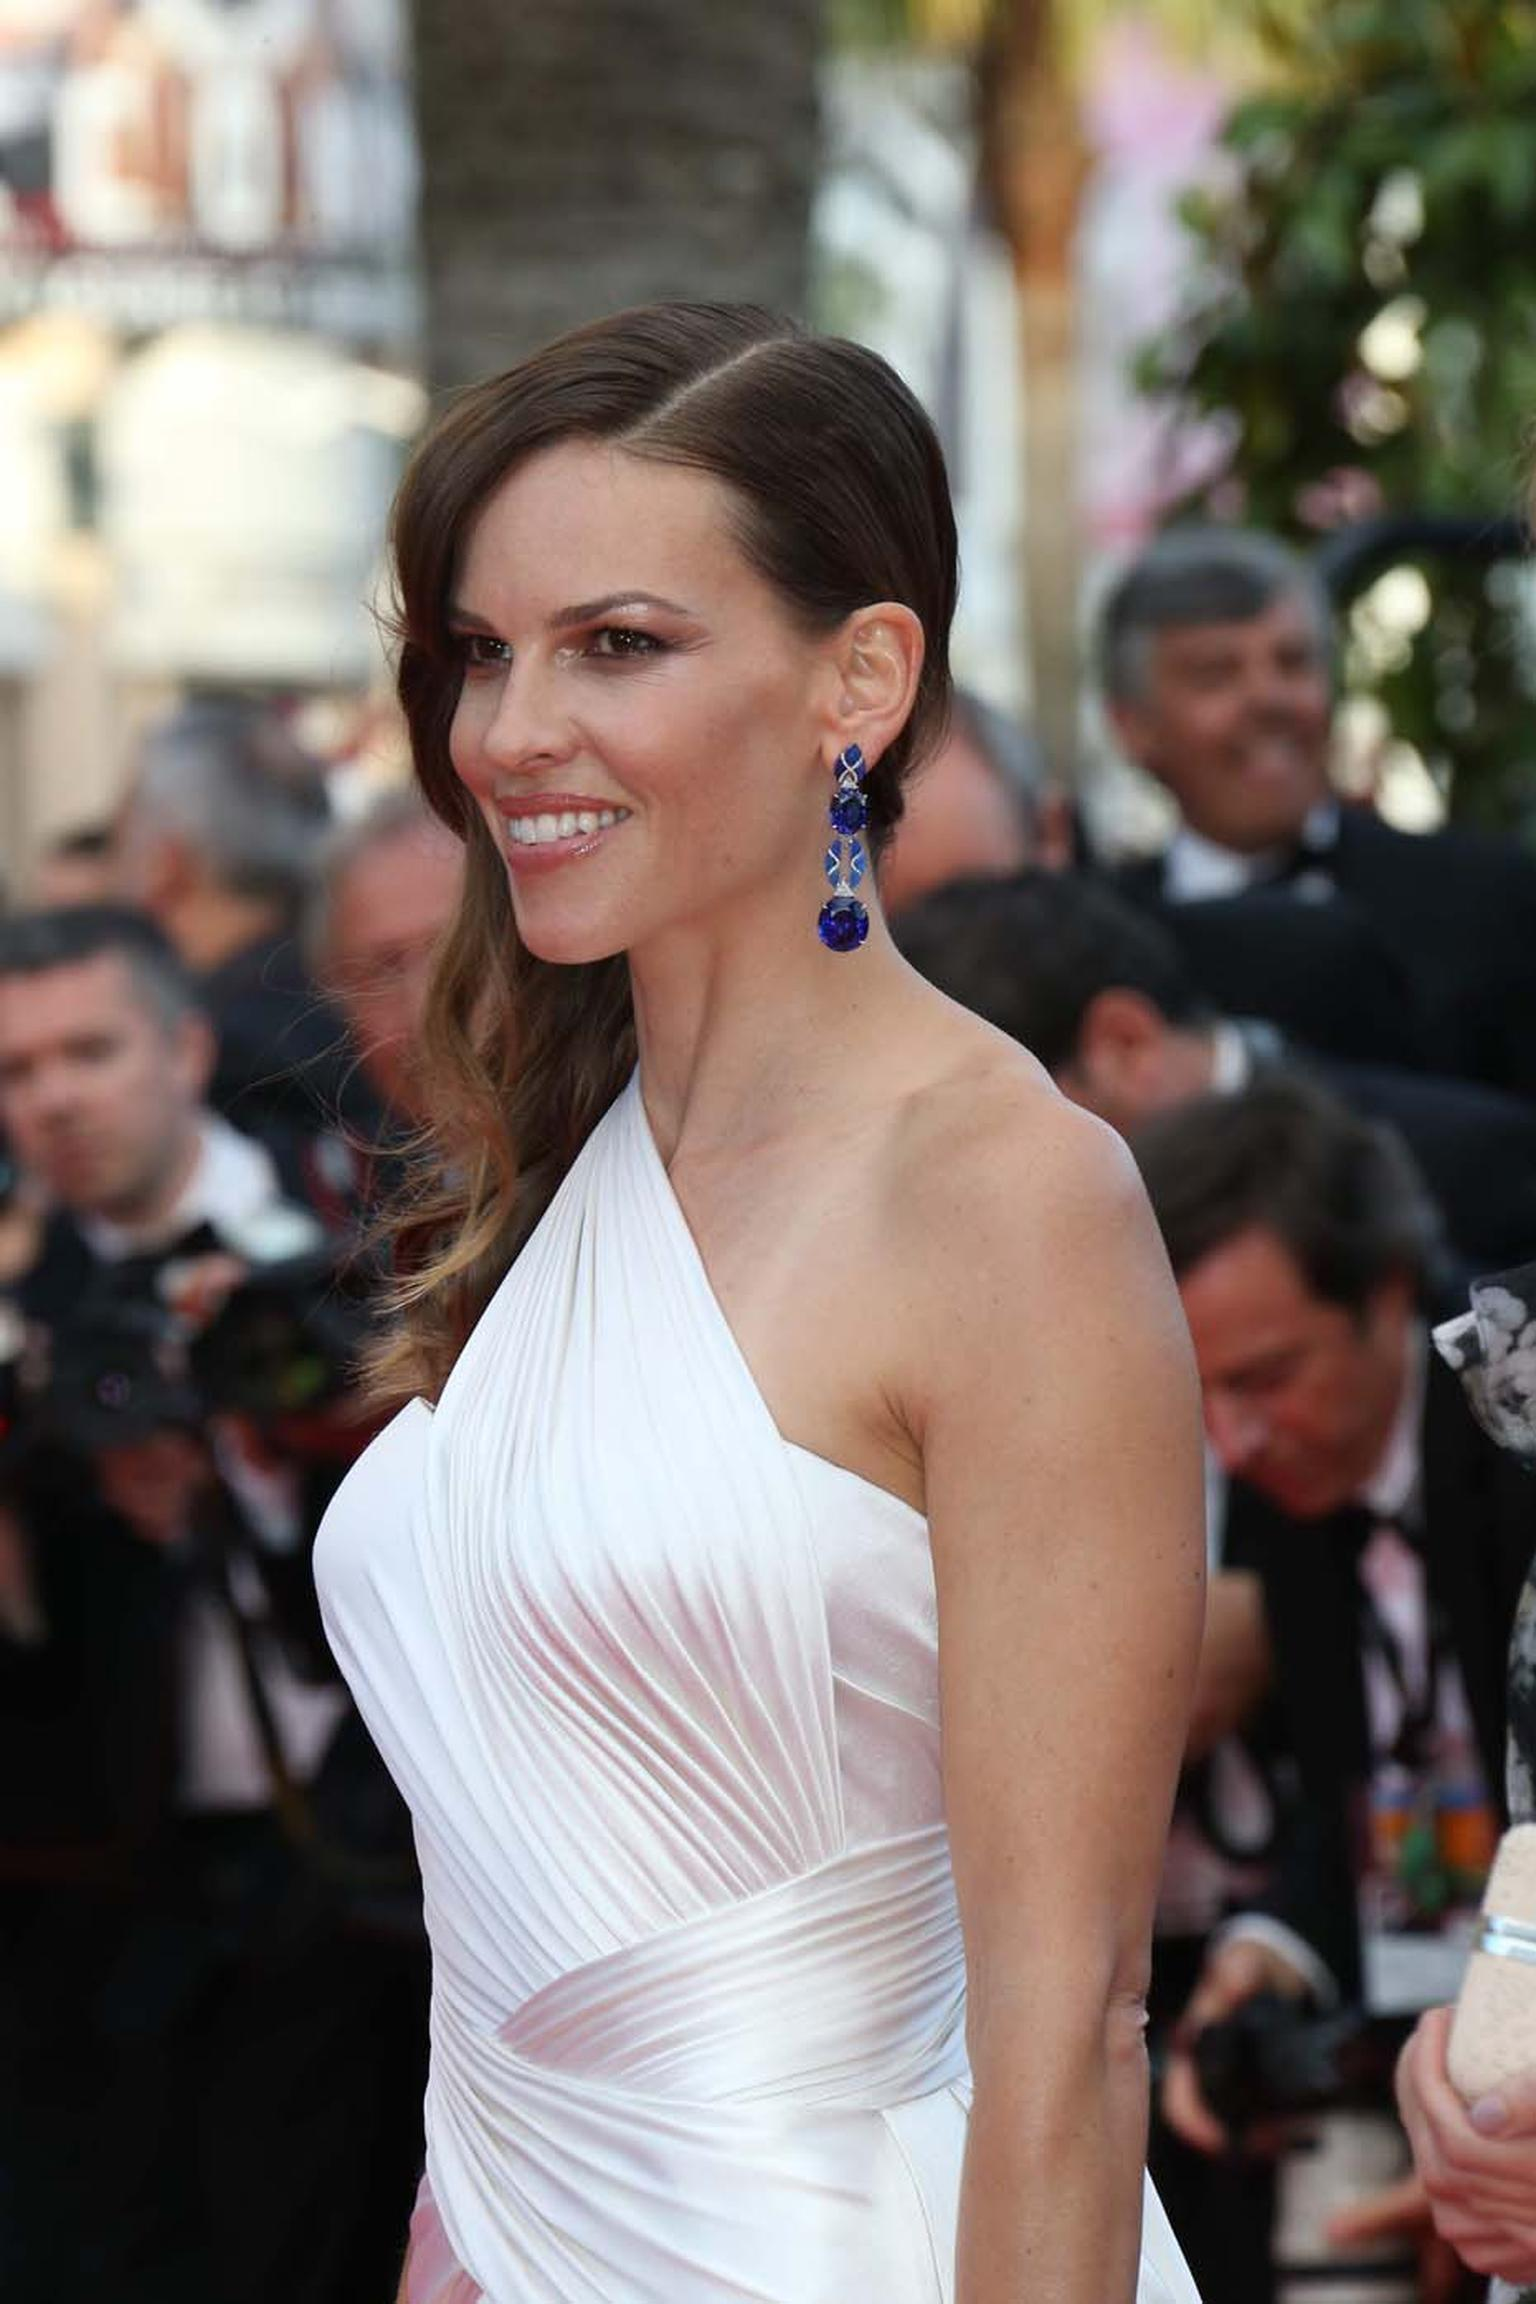 Actress Hilary Swank wore Chopard on the Cannes red carpet including earrings in white gold set with tanzanites (102cts), opals (8cts) and diamonds.